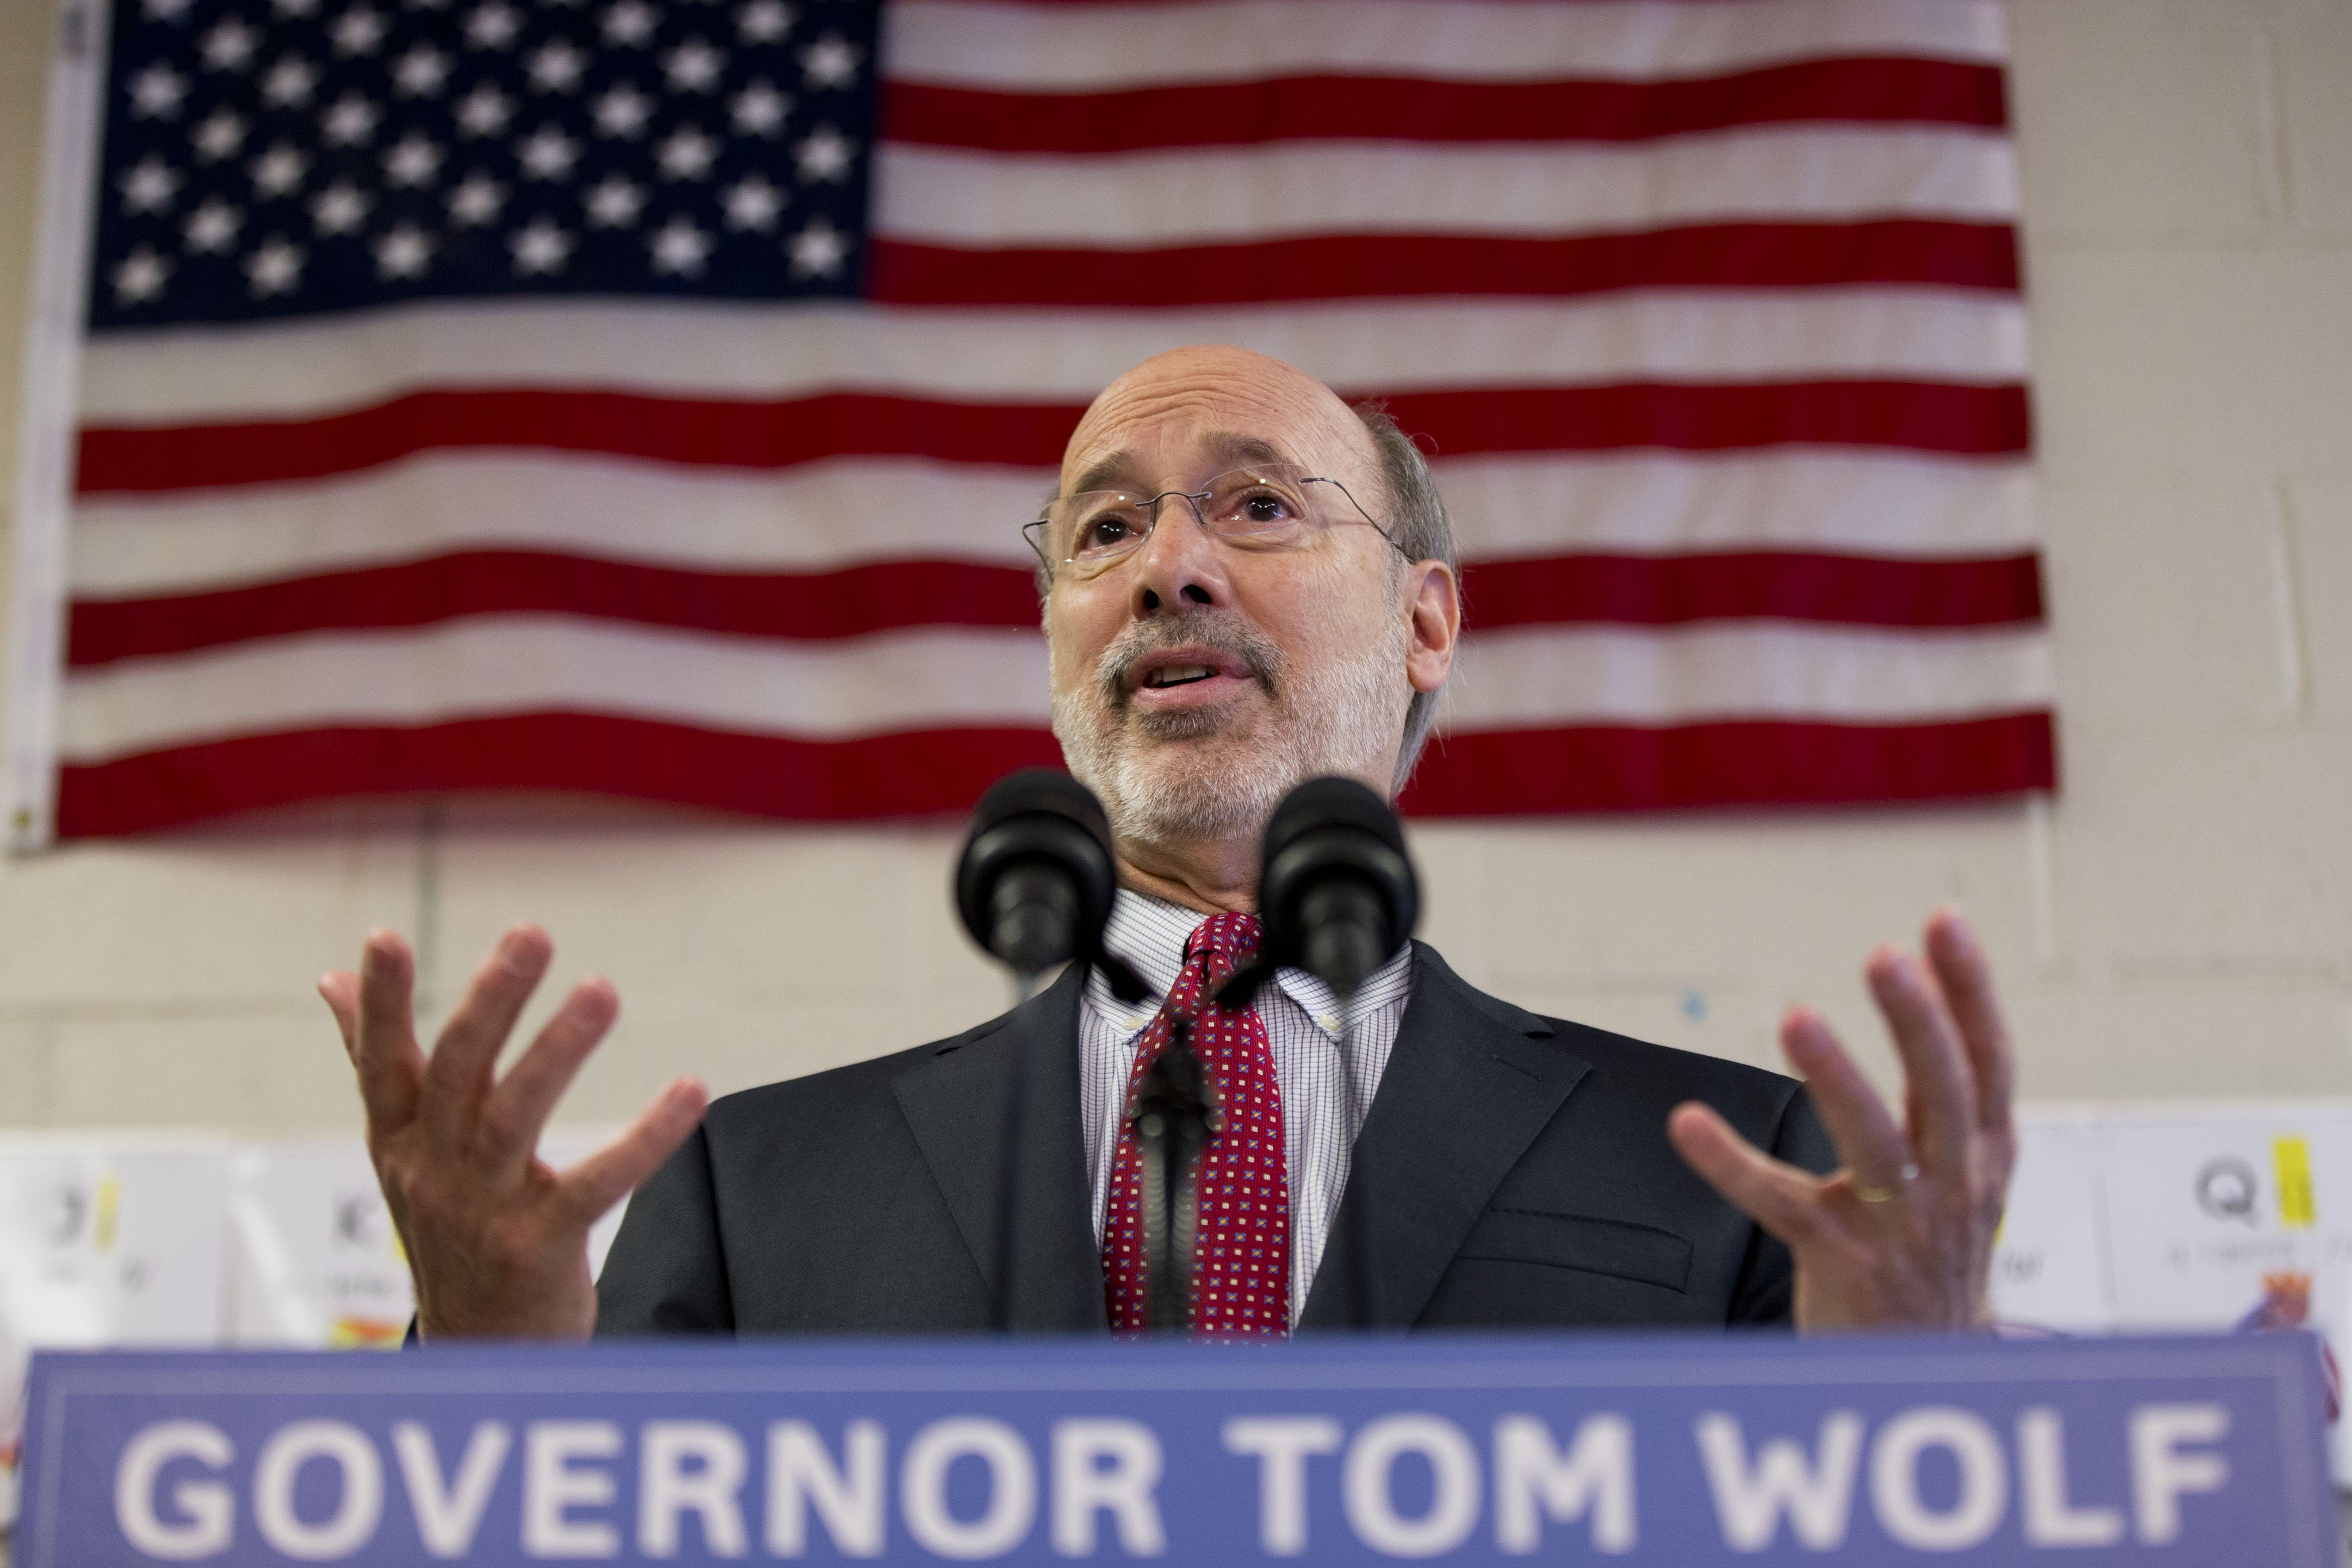 Gov. Tom Wolf Caln speaks during a news conference at Elementary School on Feb. 11, 2015, in Thorndale, Pa.